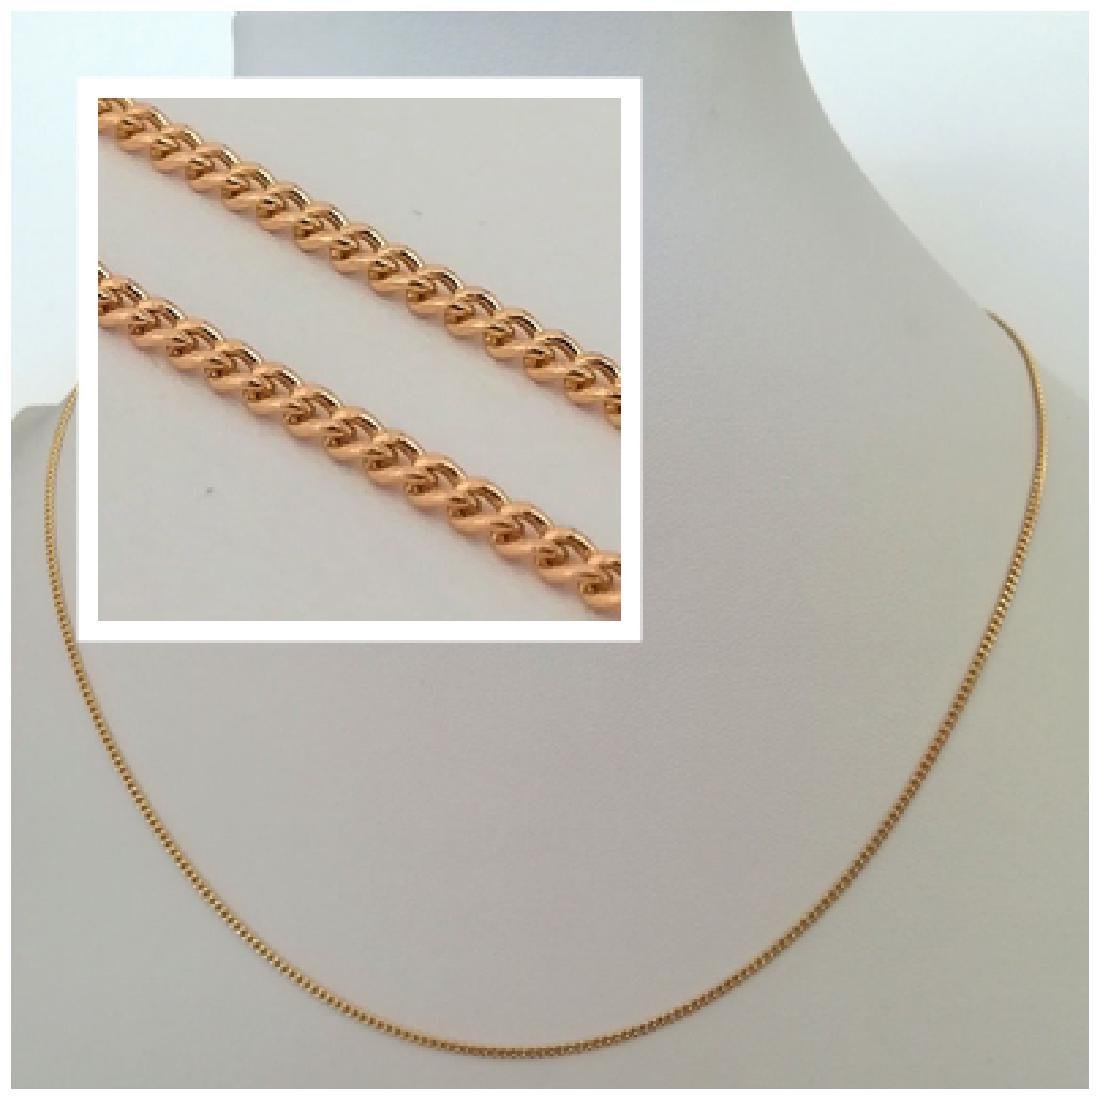 19,2 Kt - Gold necklace with 50 cm - 4.9 Grams